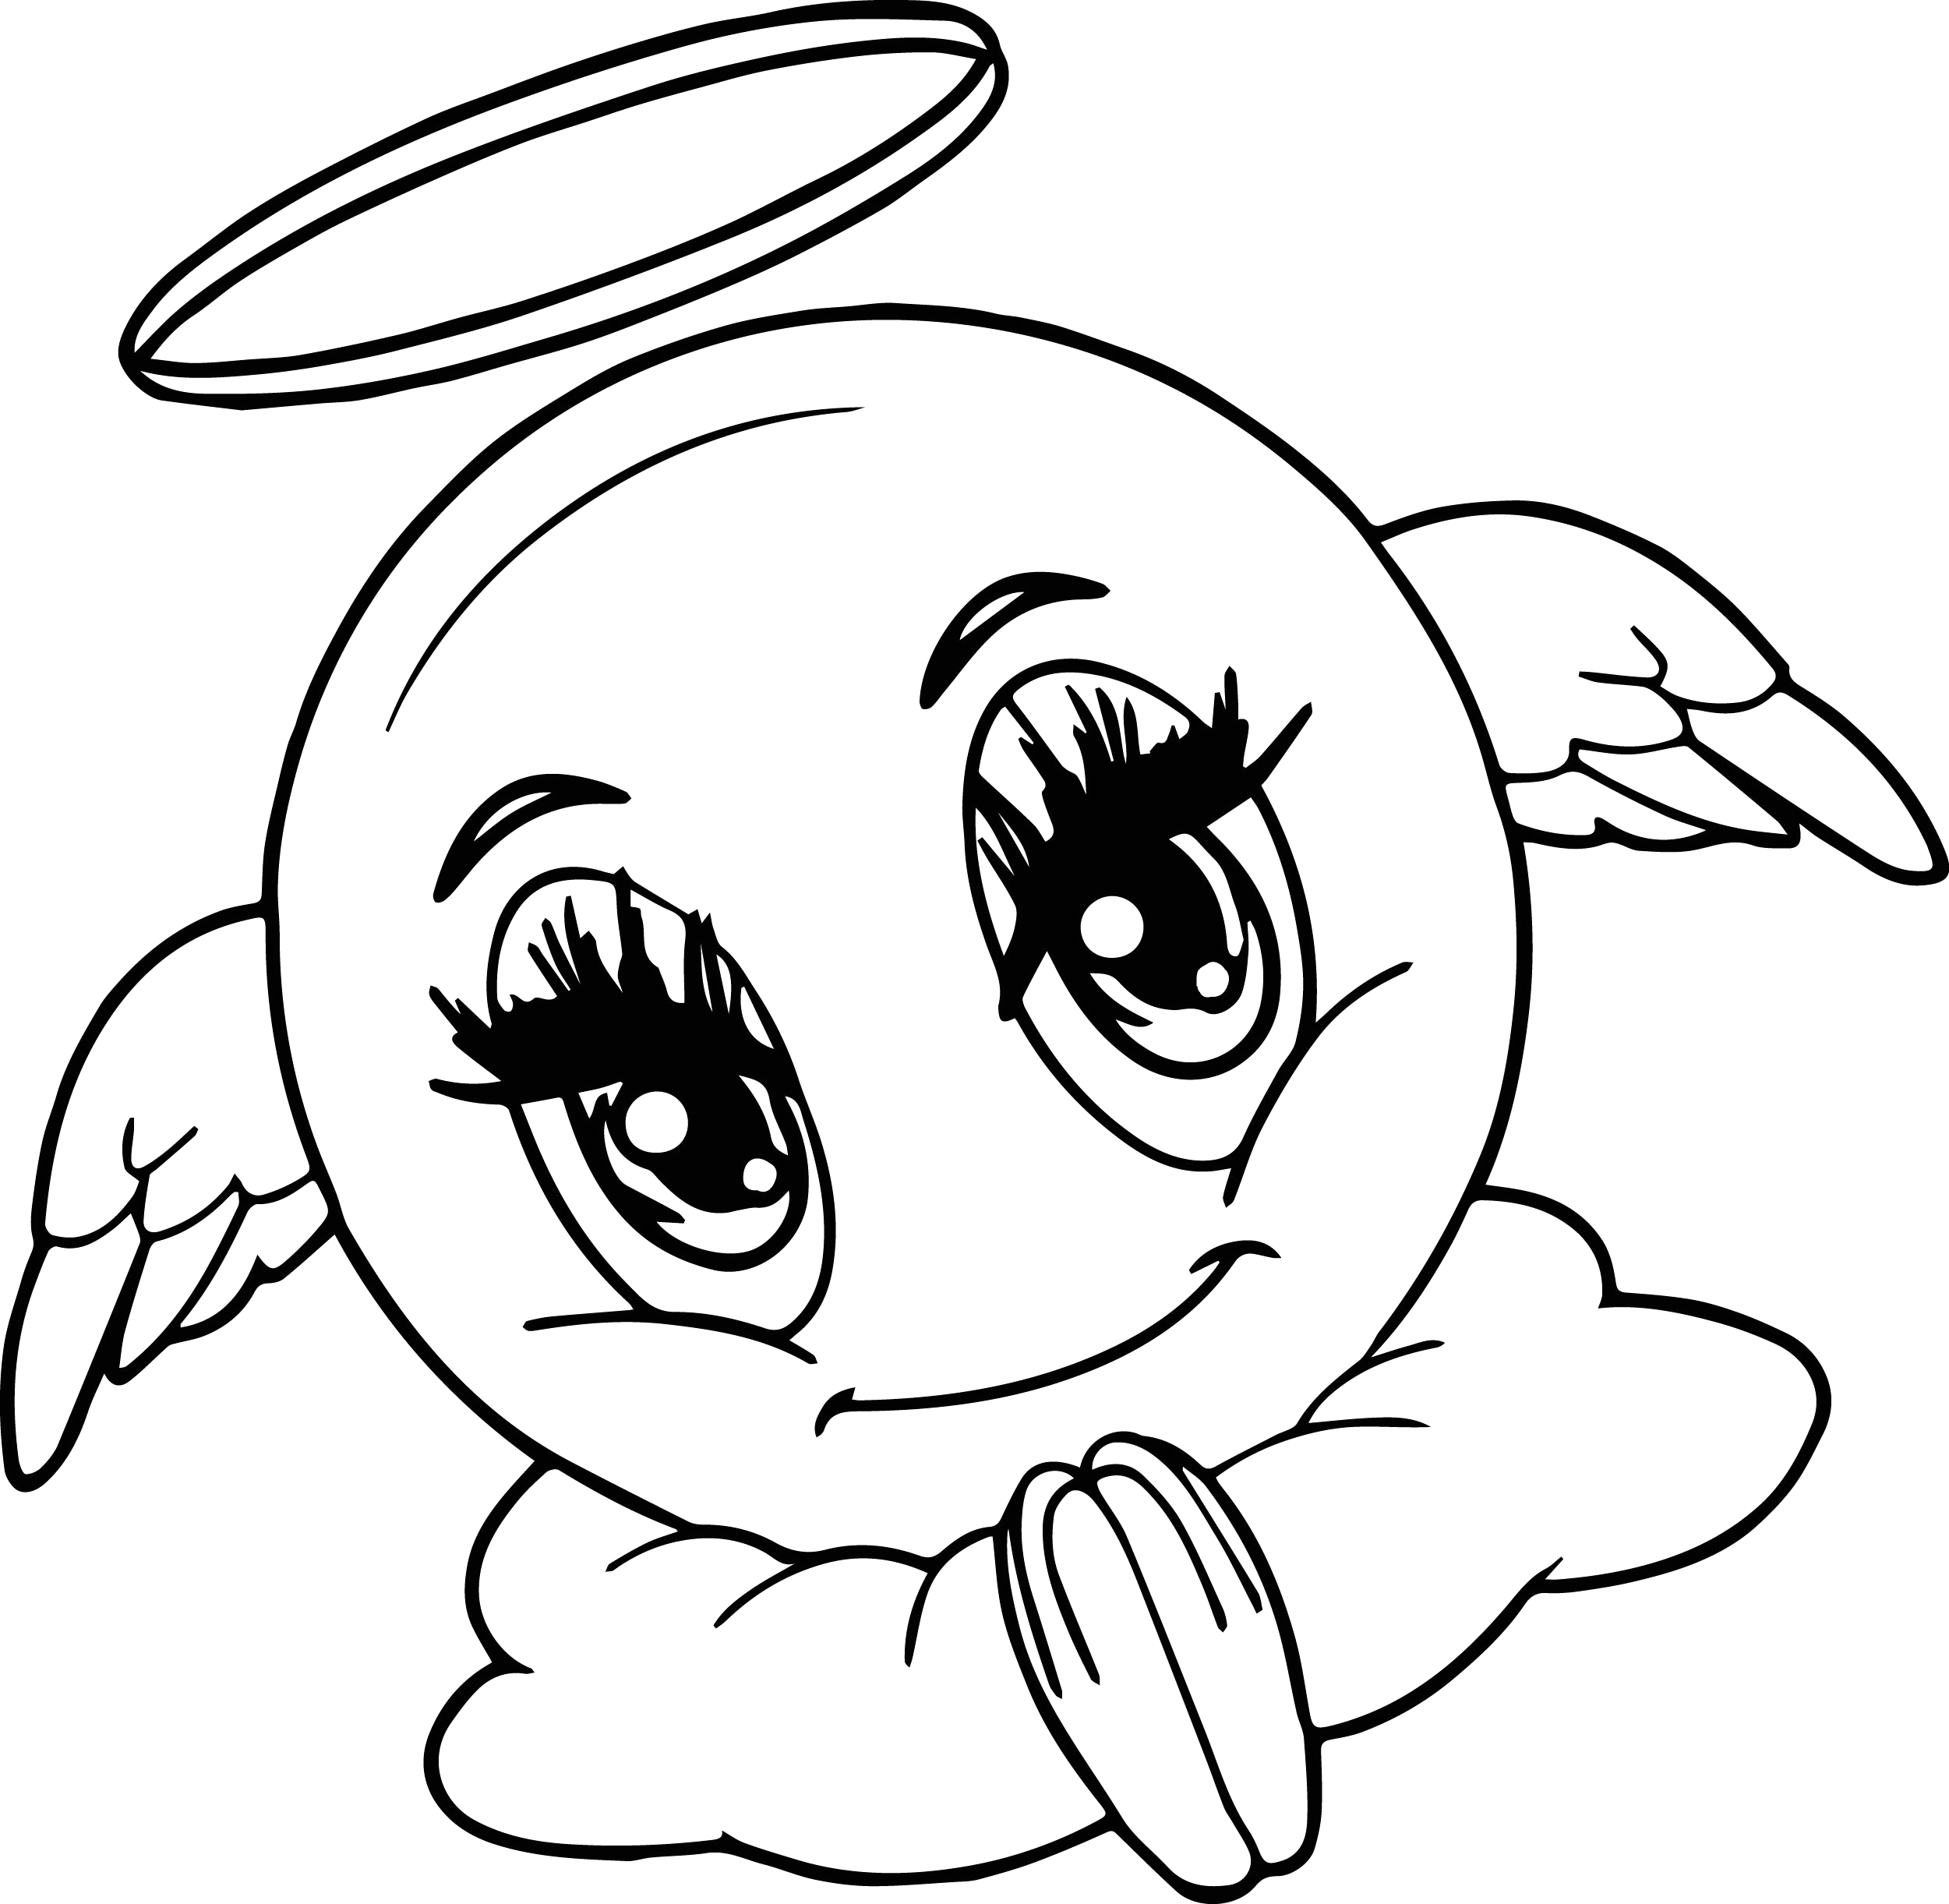 Emoji Coloring Pages to Print for Free Free Emoji Coloring Pages to Print